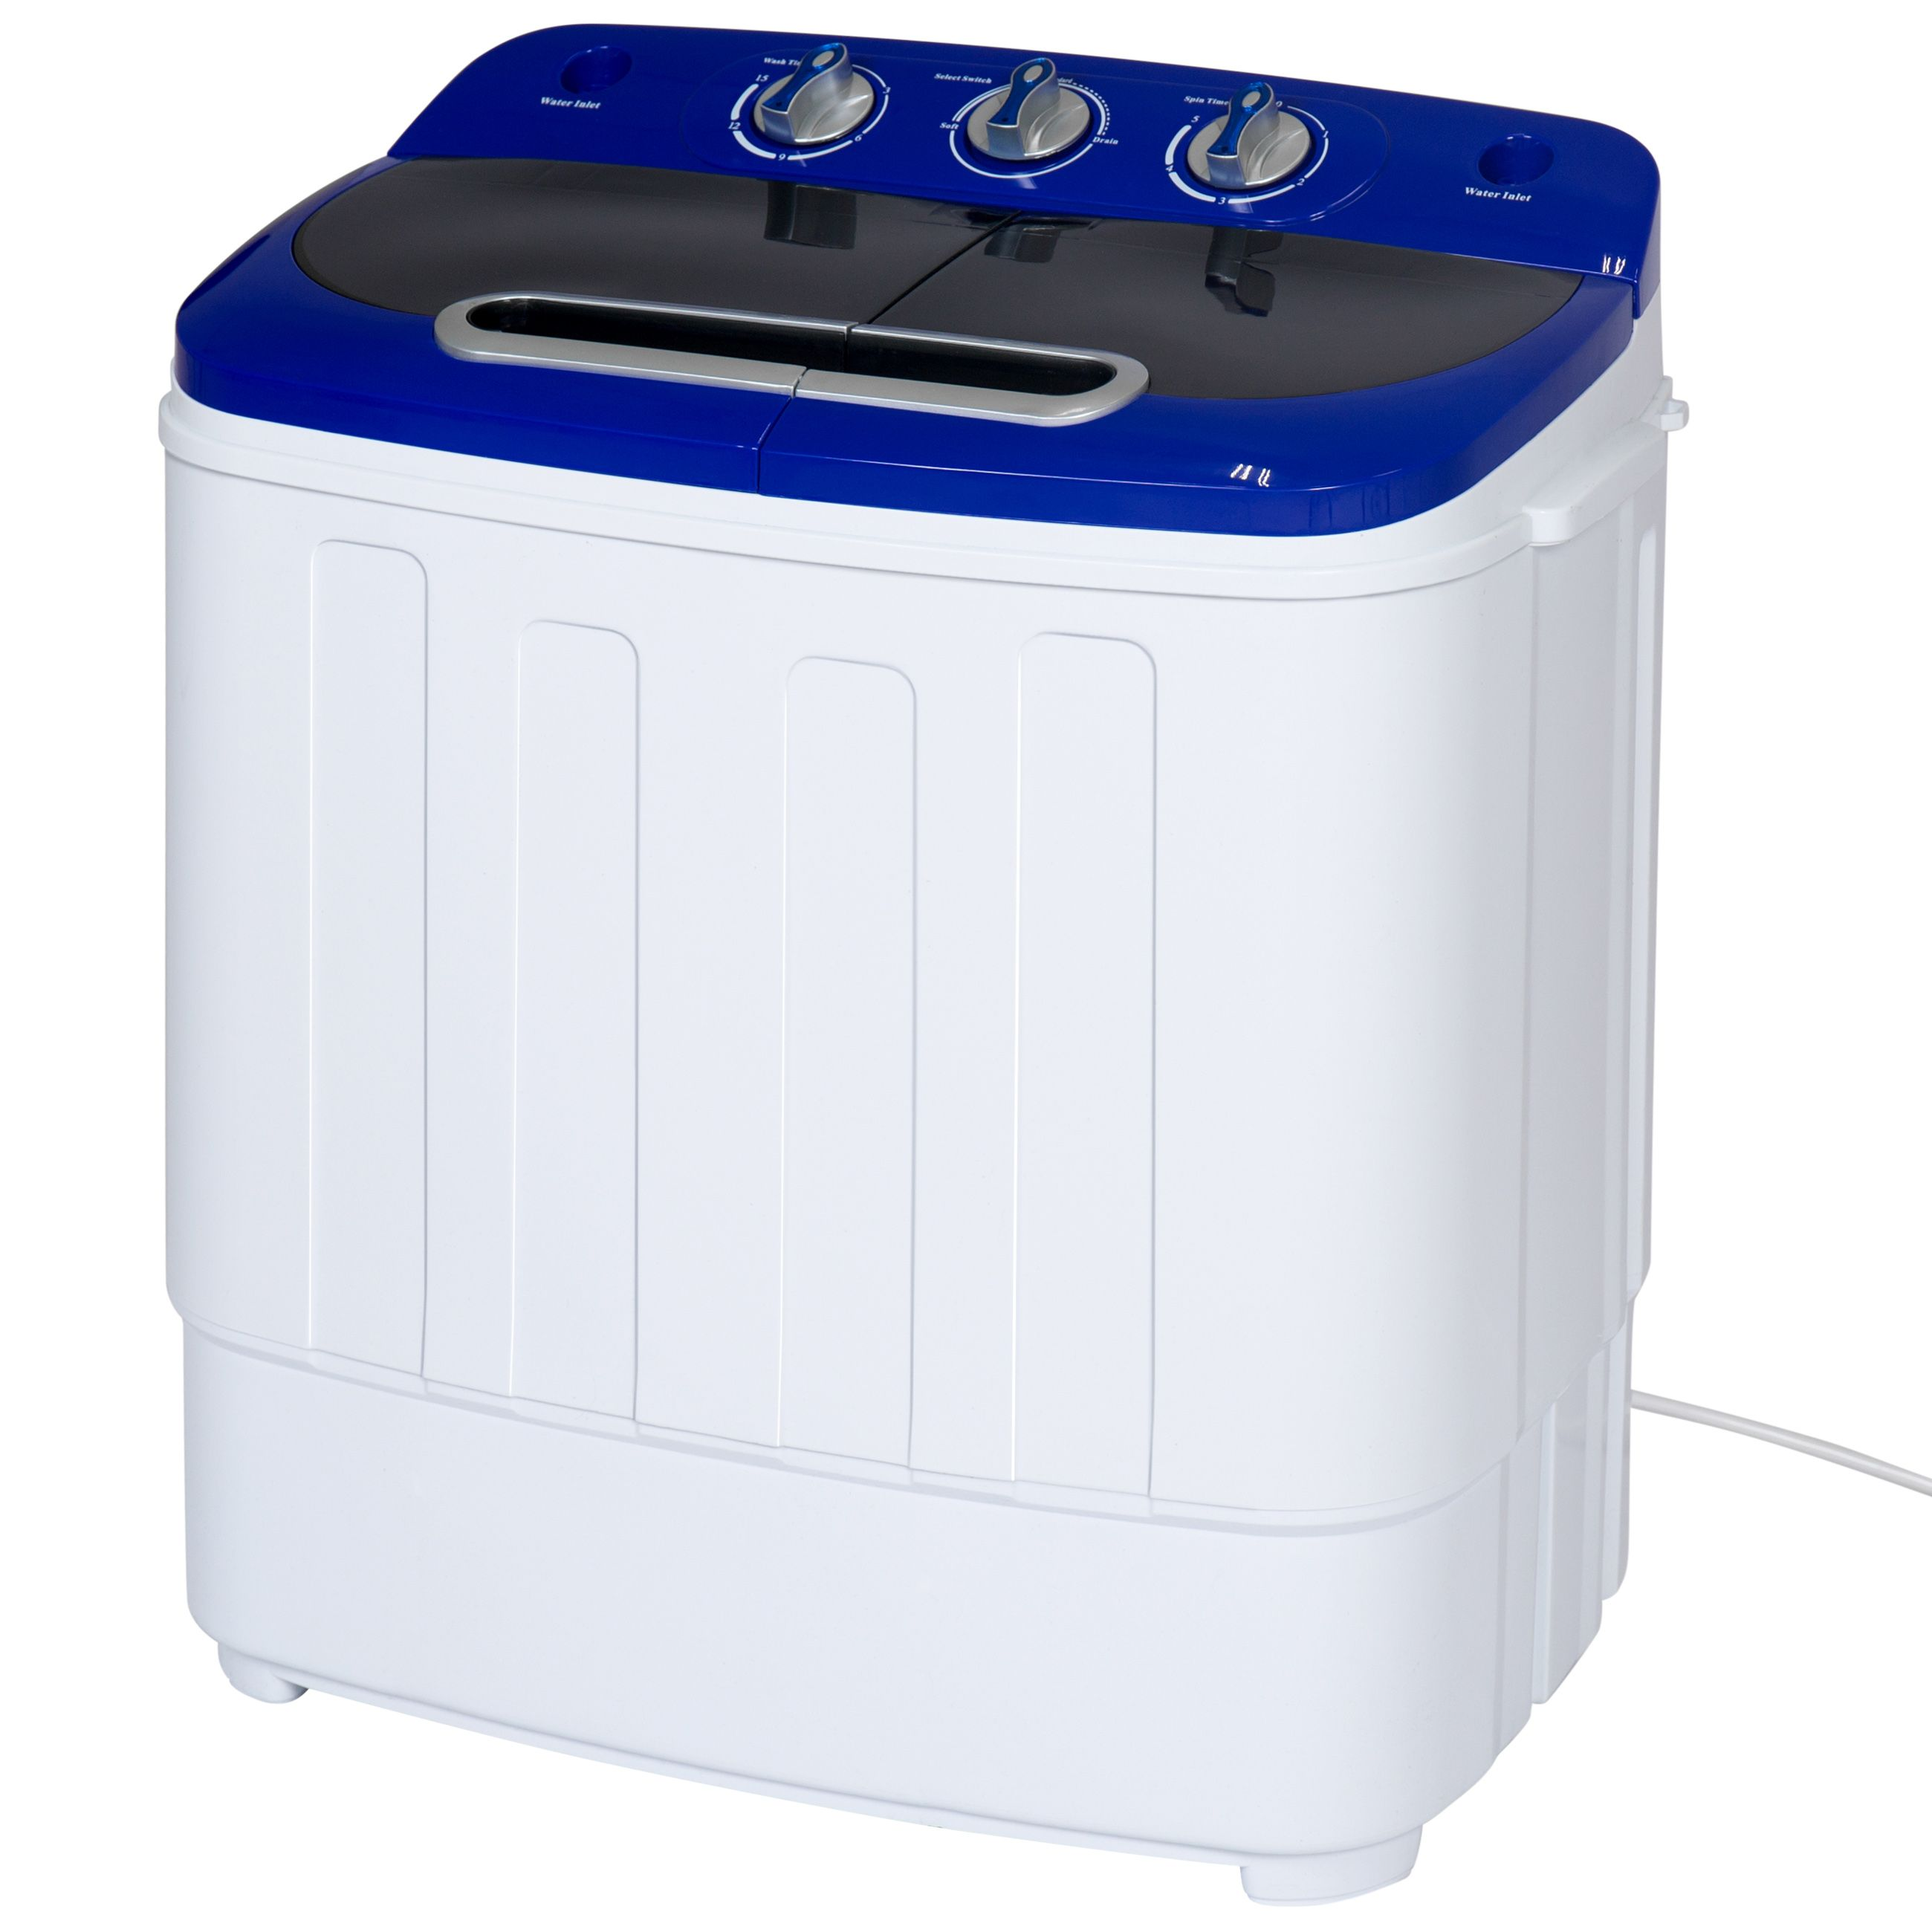 Best Choice Products Portable Compact Mini Twin Tub Washing Machine And Spin Cycle Dryer W Portable Washer And Dryer Portable Washing Machine Portable Washer